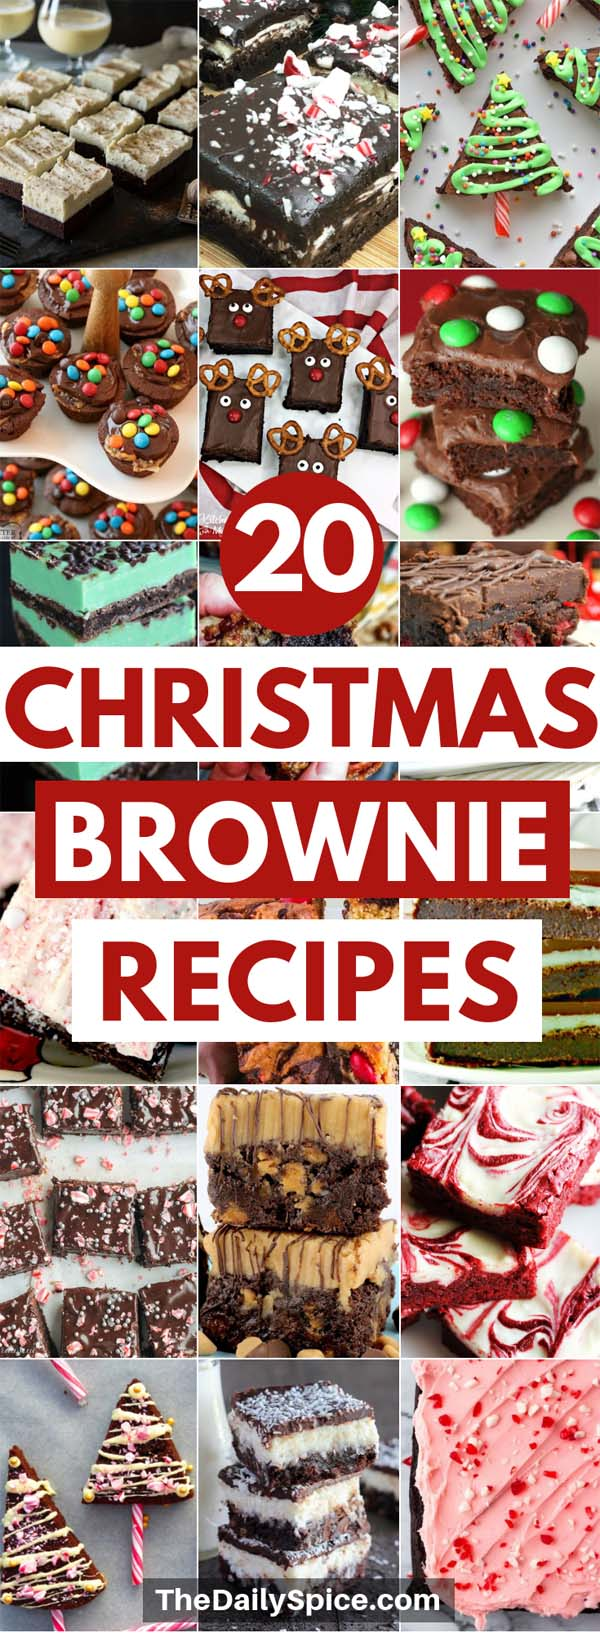 Christmas Brownie Recipes